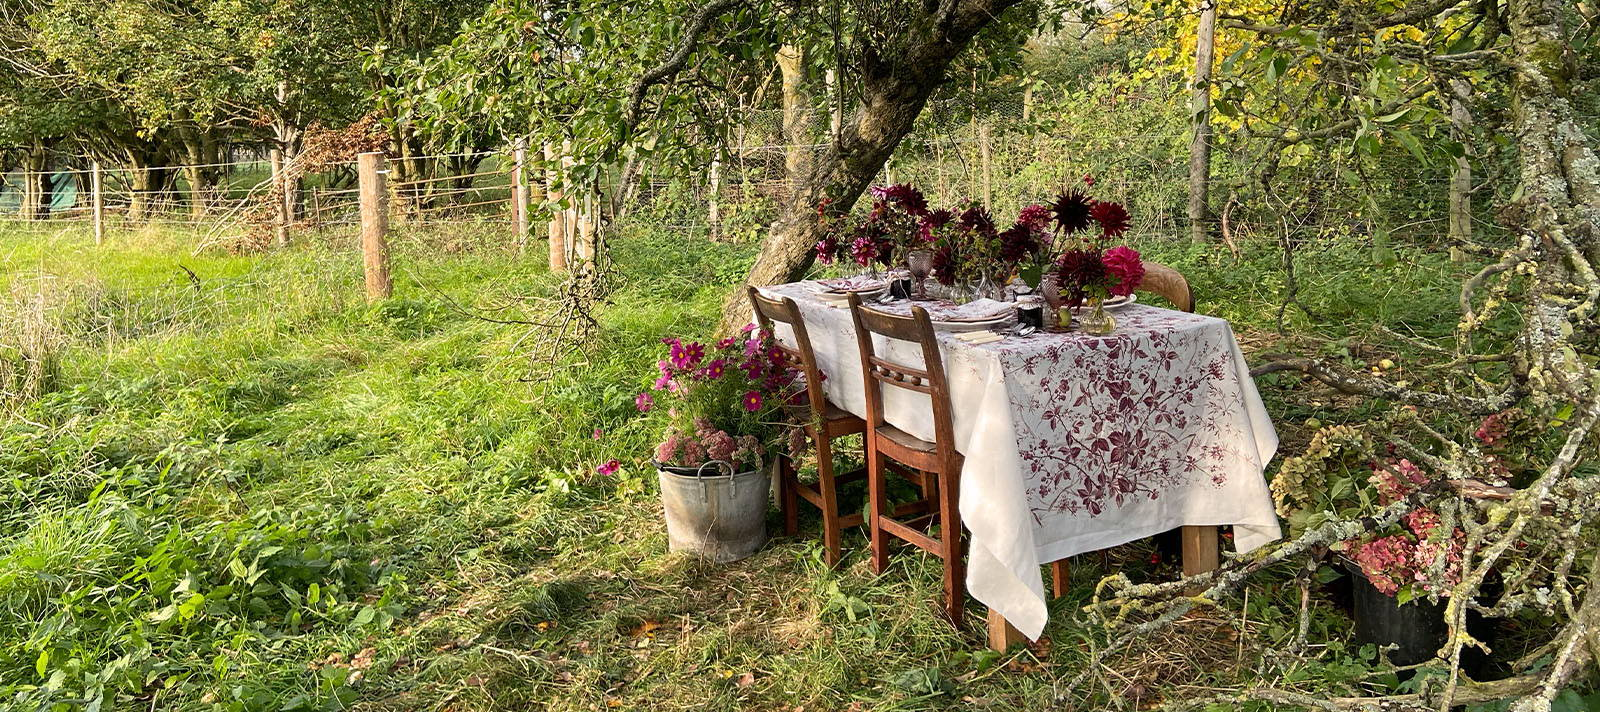 The perfect picnic spot under an apple tree - a tablescape with YOLKE Home and Kitten Grayson Flowers